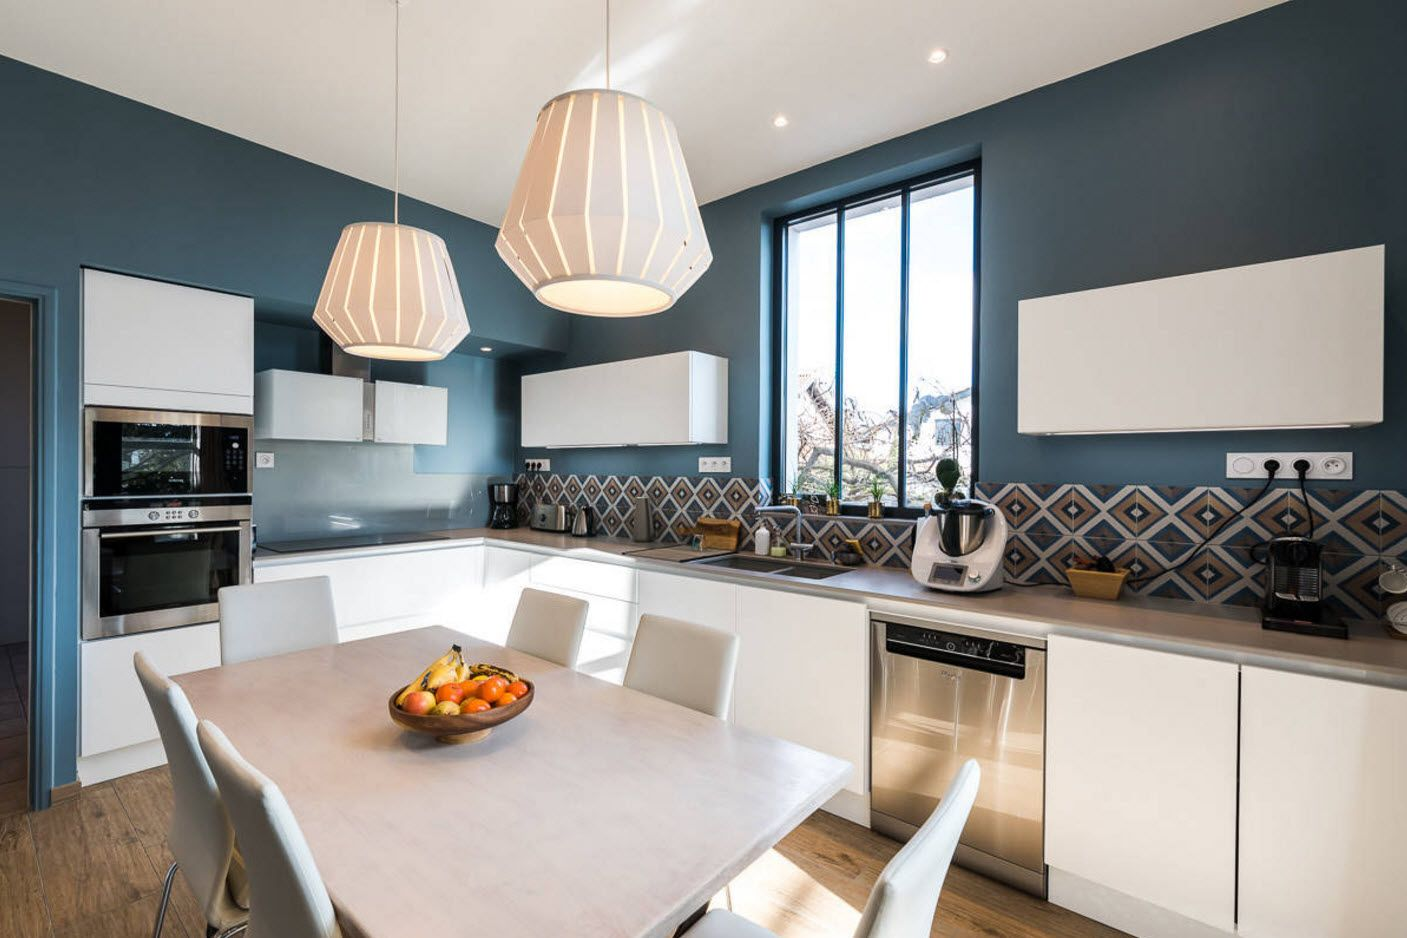 Nice dark blue wall paint decoration in the modern minimalsitic kitchen with large table